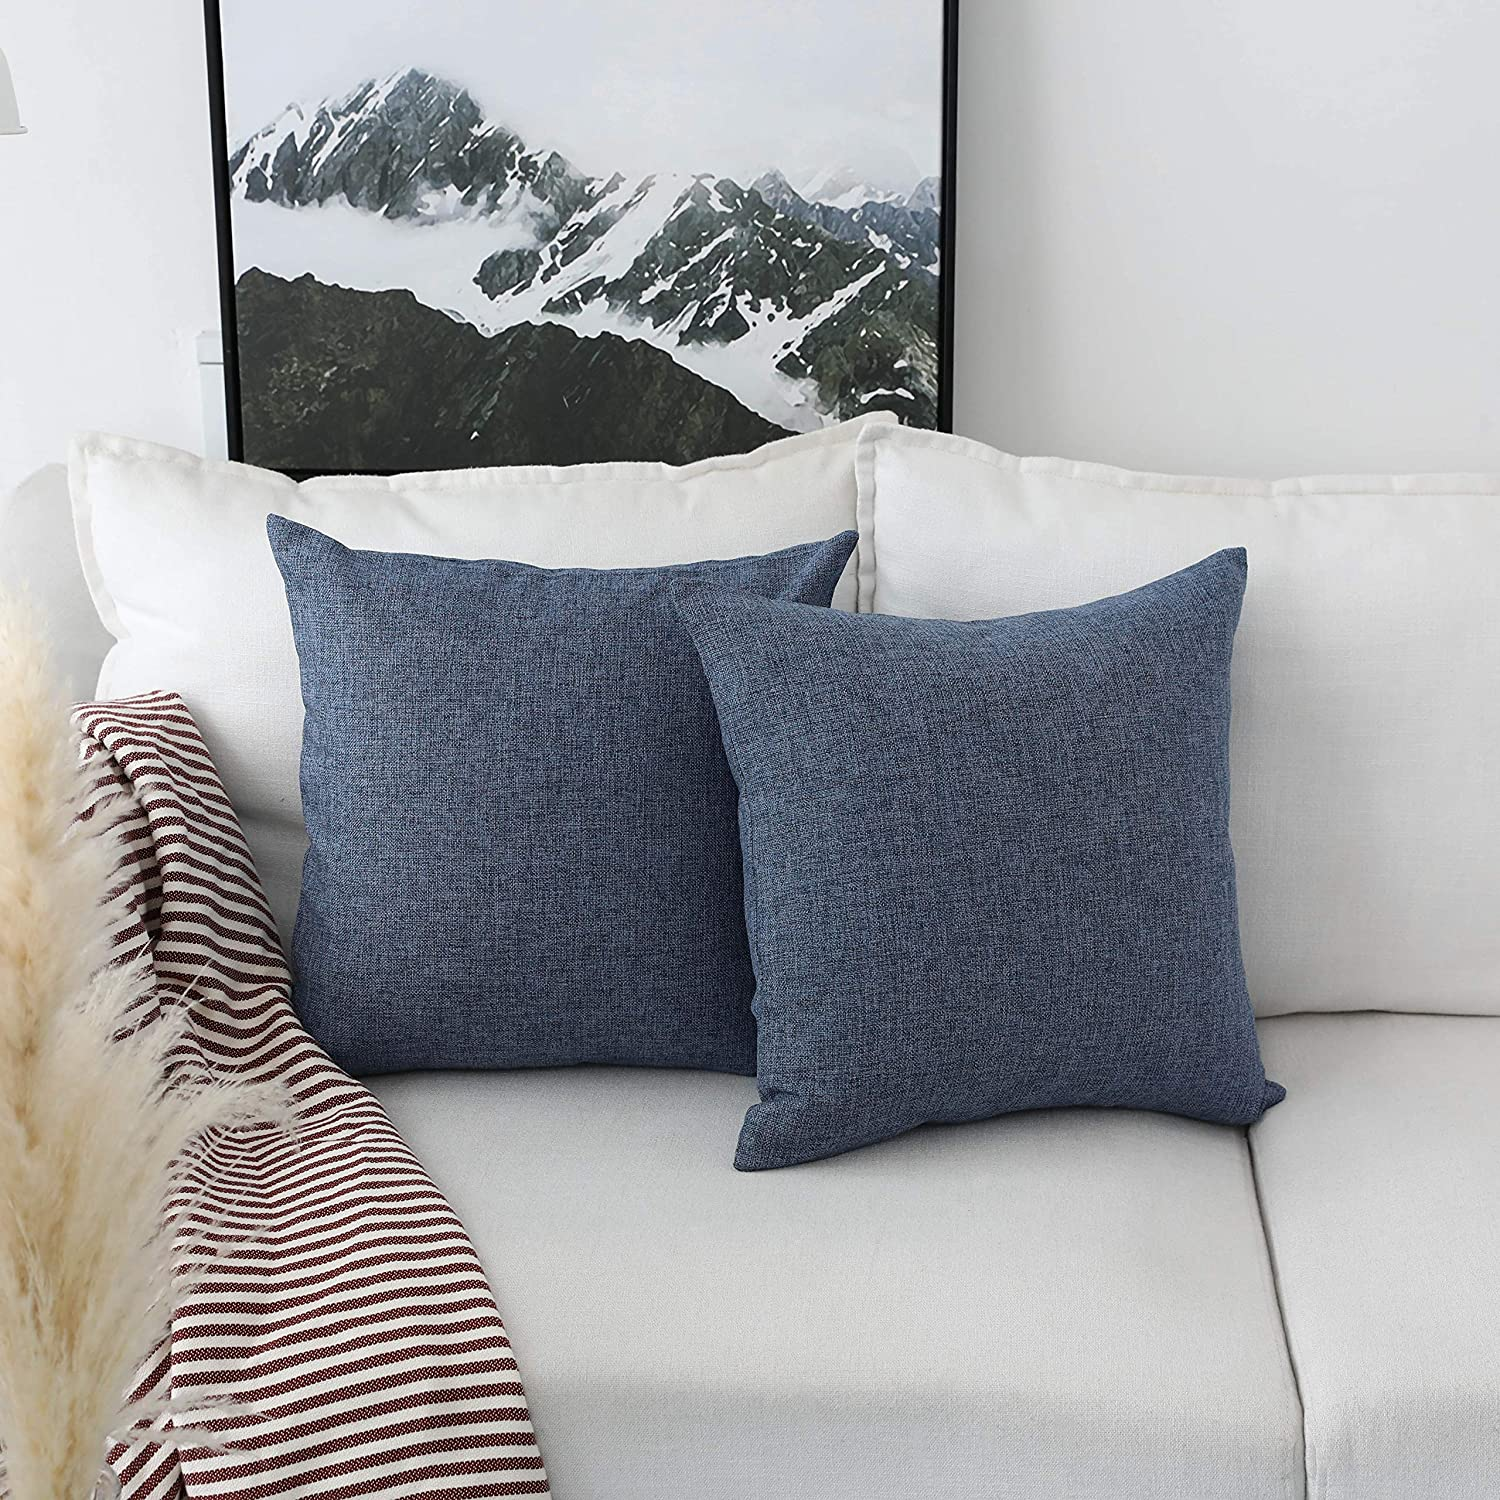 Home Brilliant Indigo Linen Decorative Pillow Covers Lined Cushion Cover for Couch, 20x20 Inch(50x50cm), Set of 2, Navy Blue